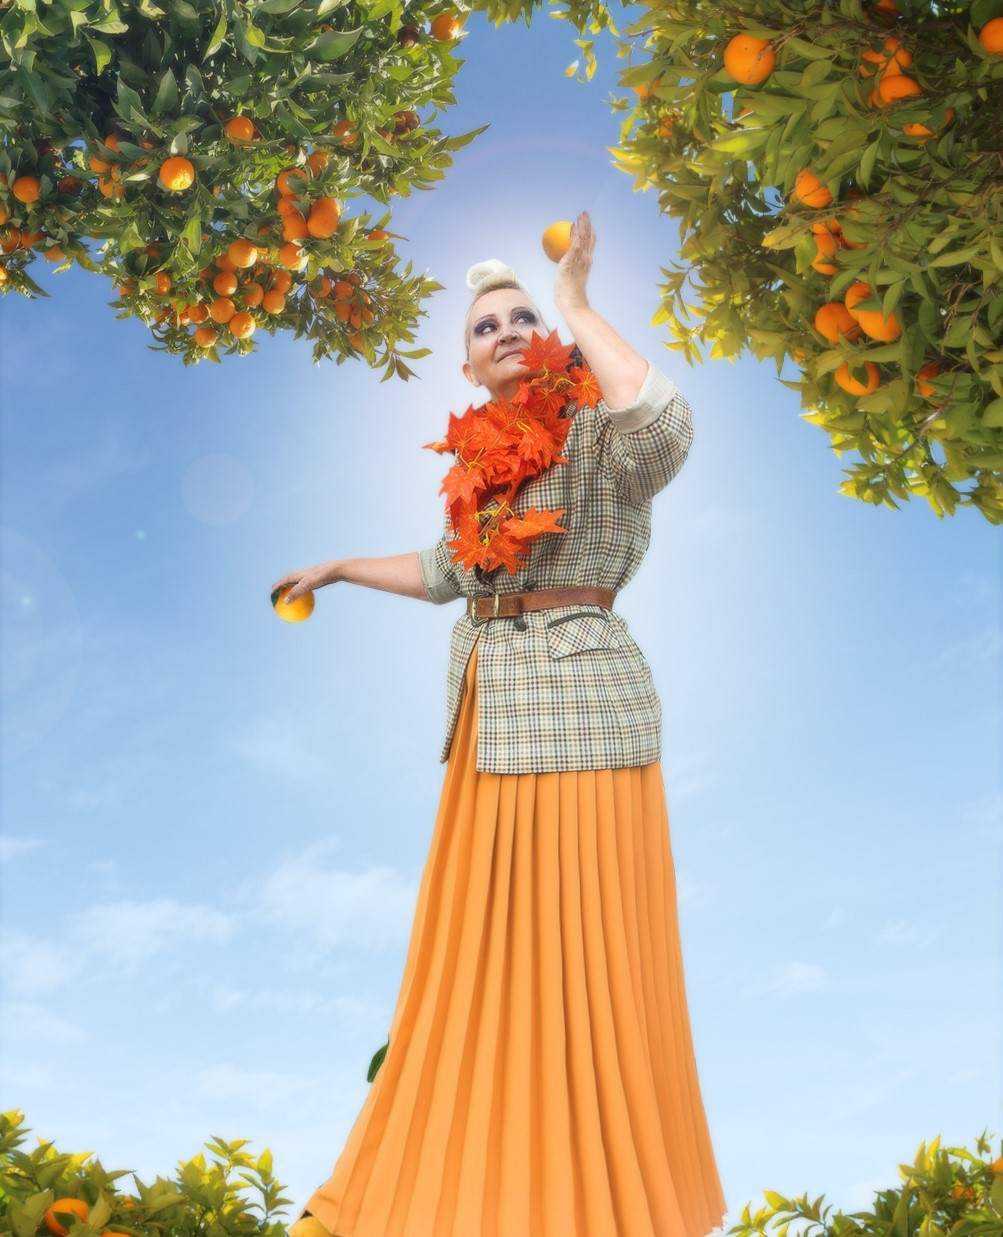 Picking the Last Oranges Before Summer